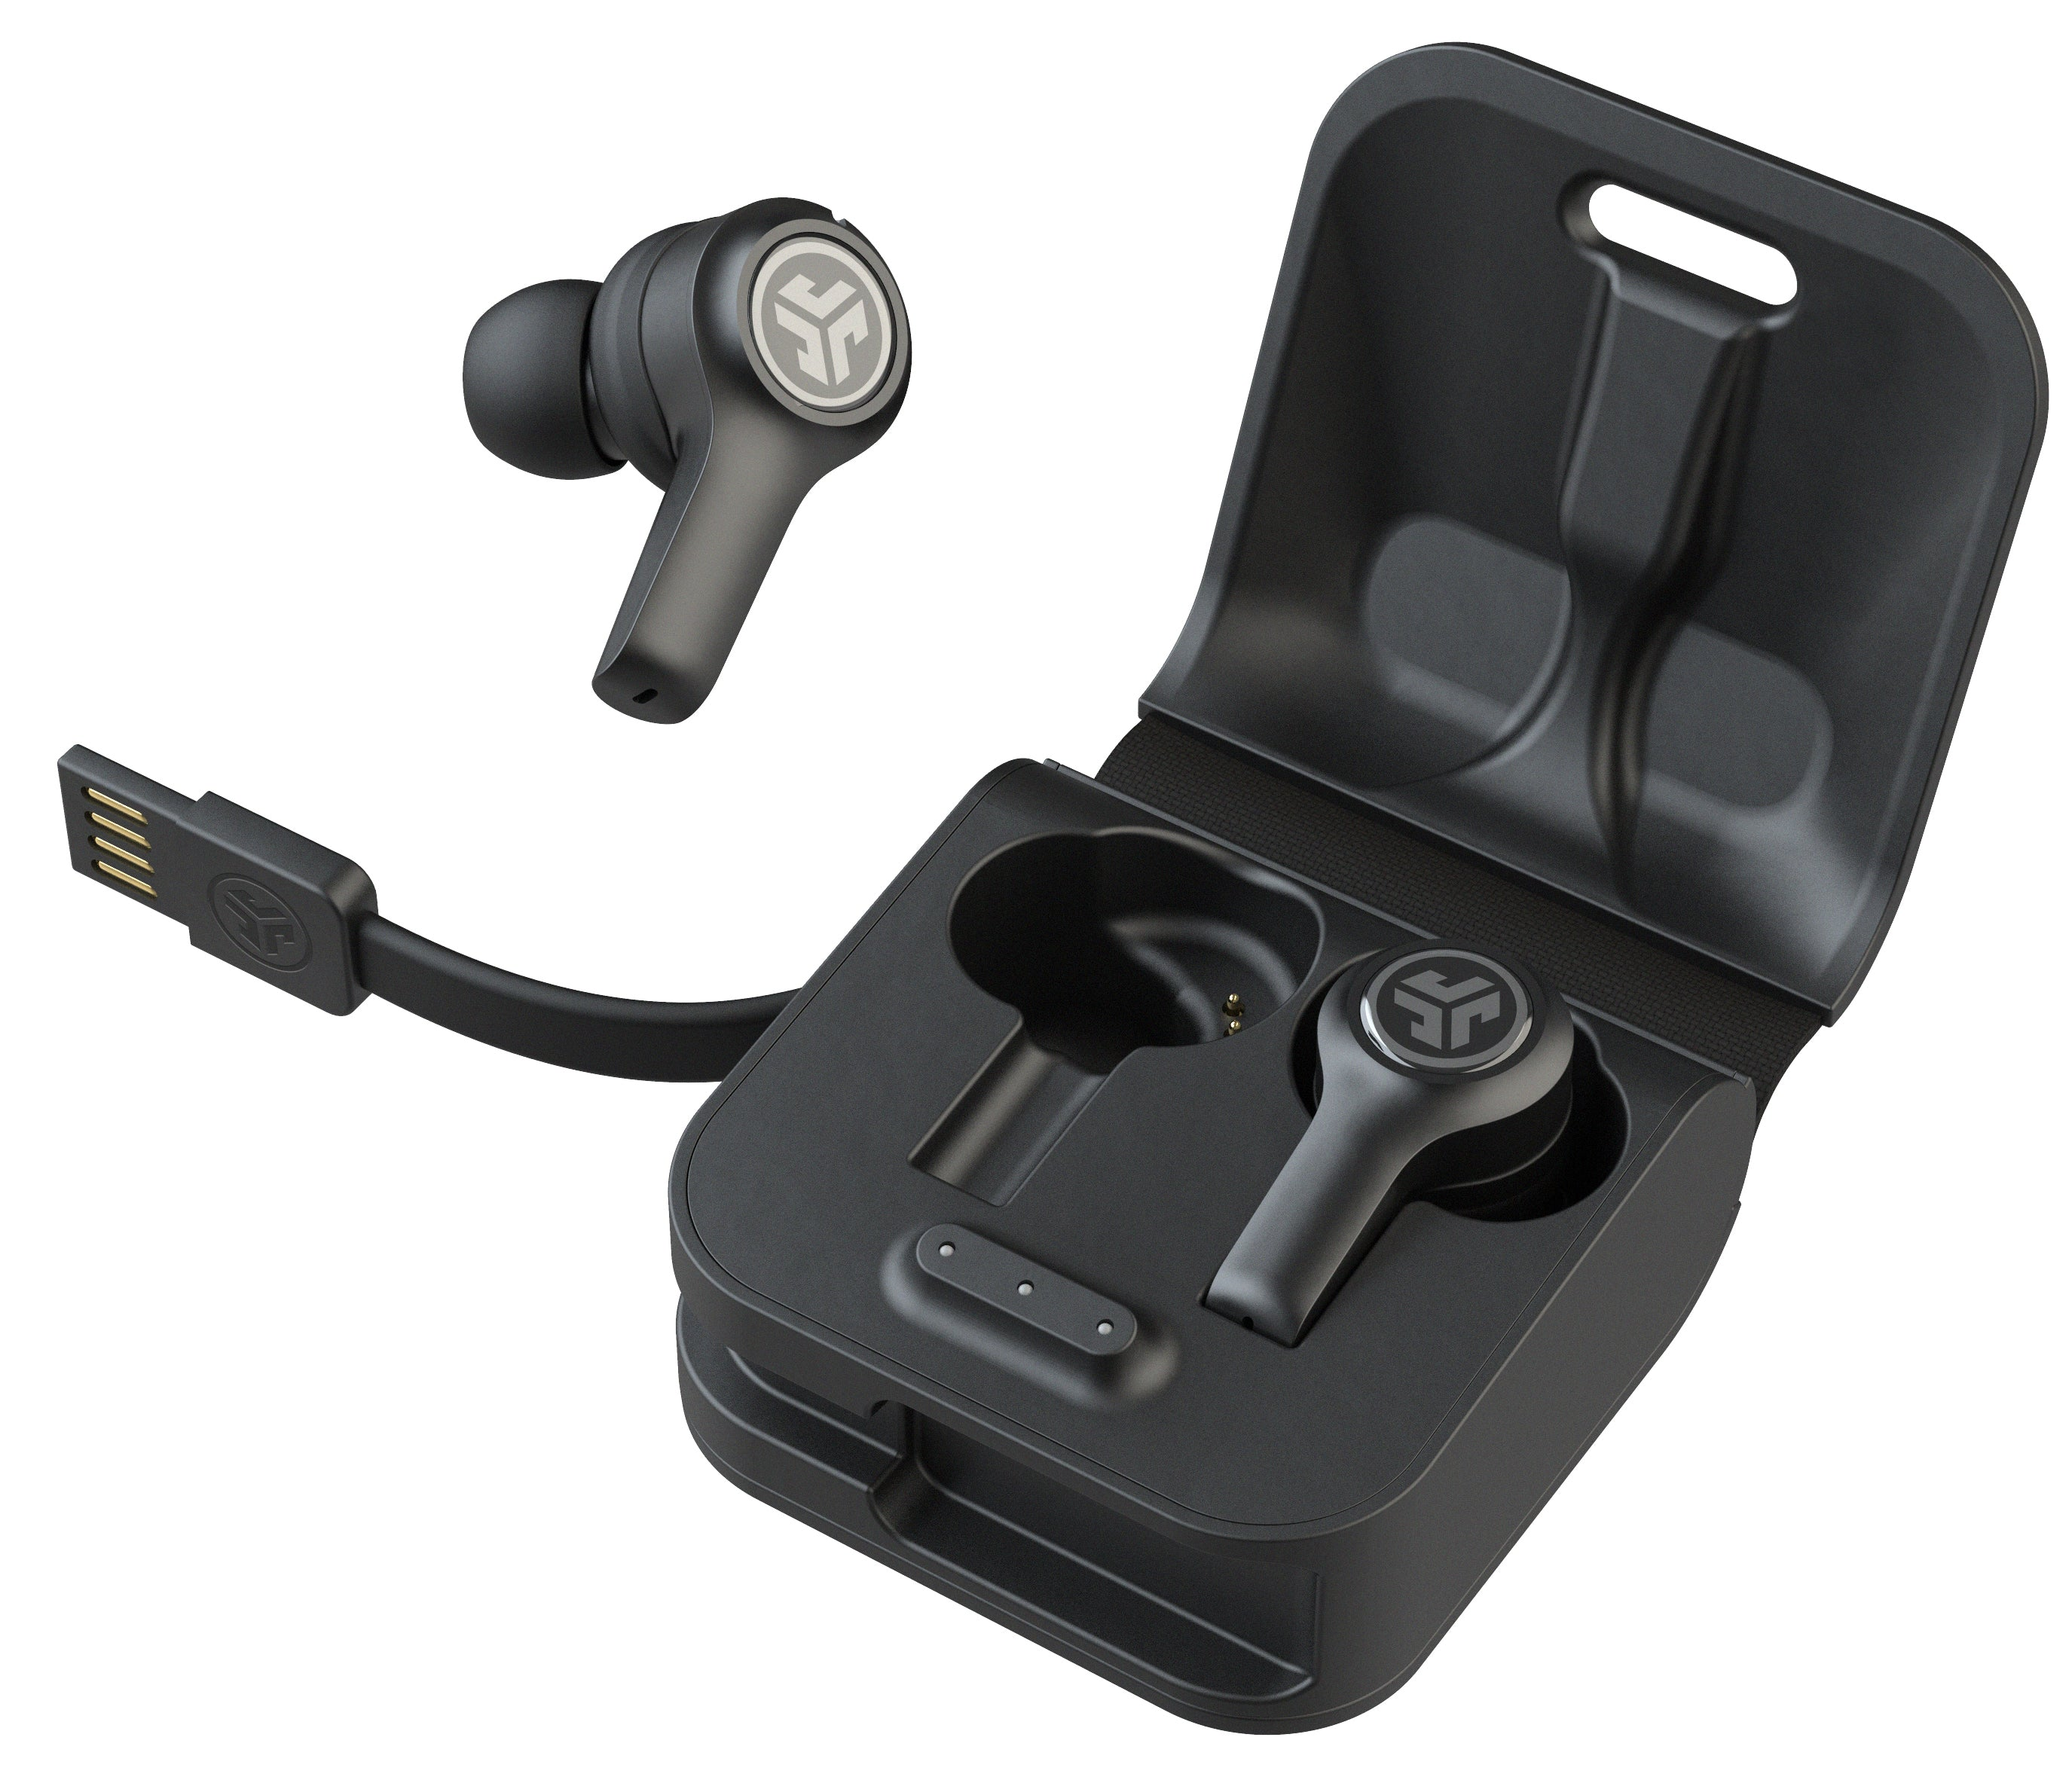 JBuds Air Executive True Wireless Earbuds com caixa de carga